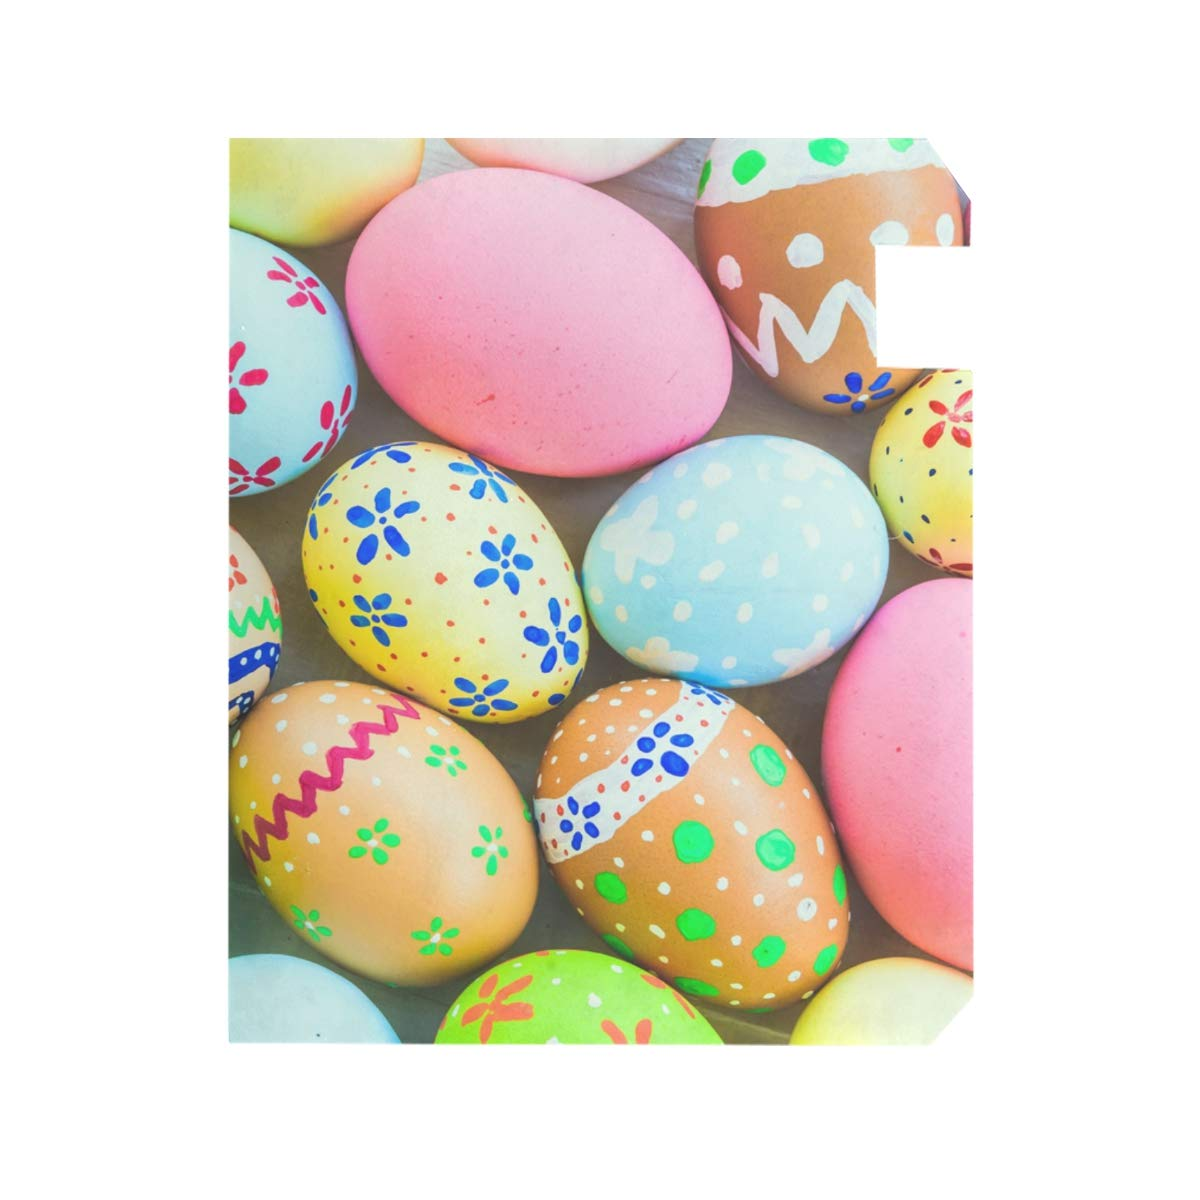 Easter Egg Standard Mailbox Covers and Wraps Magnetic Mail box Cover Vinyl Custom Home Garden Decor 52.6x45.8 cm//20.8x18